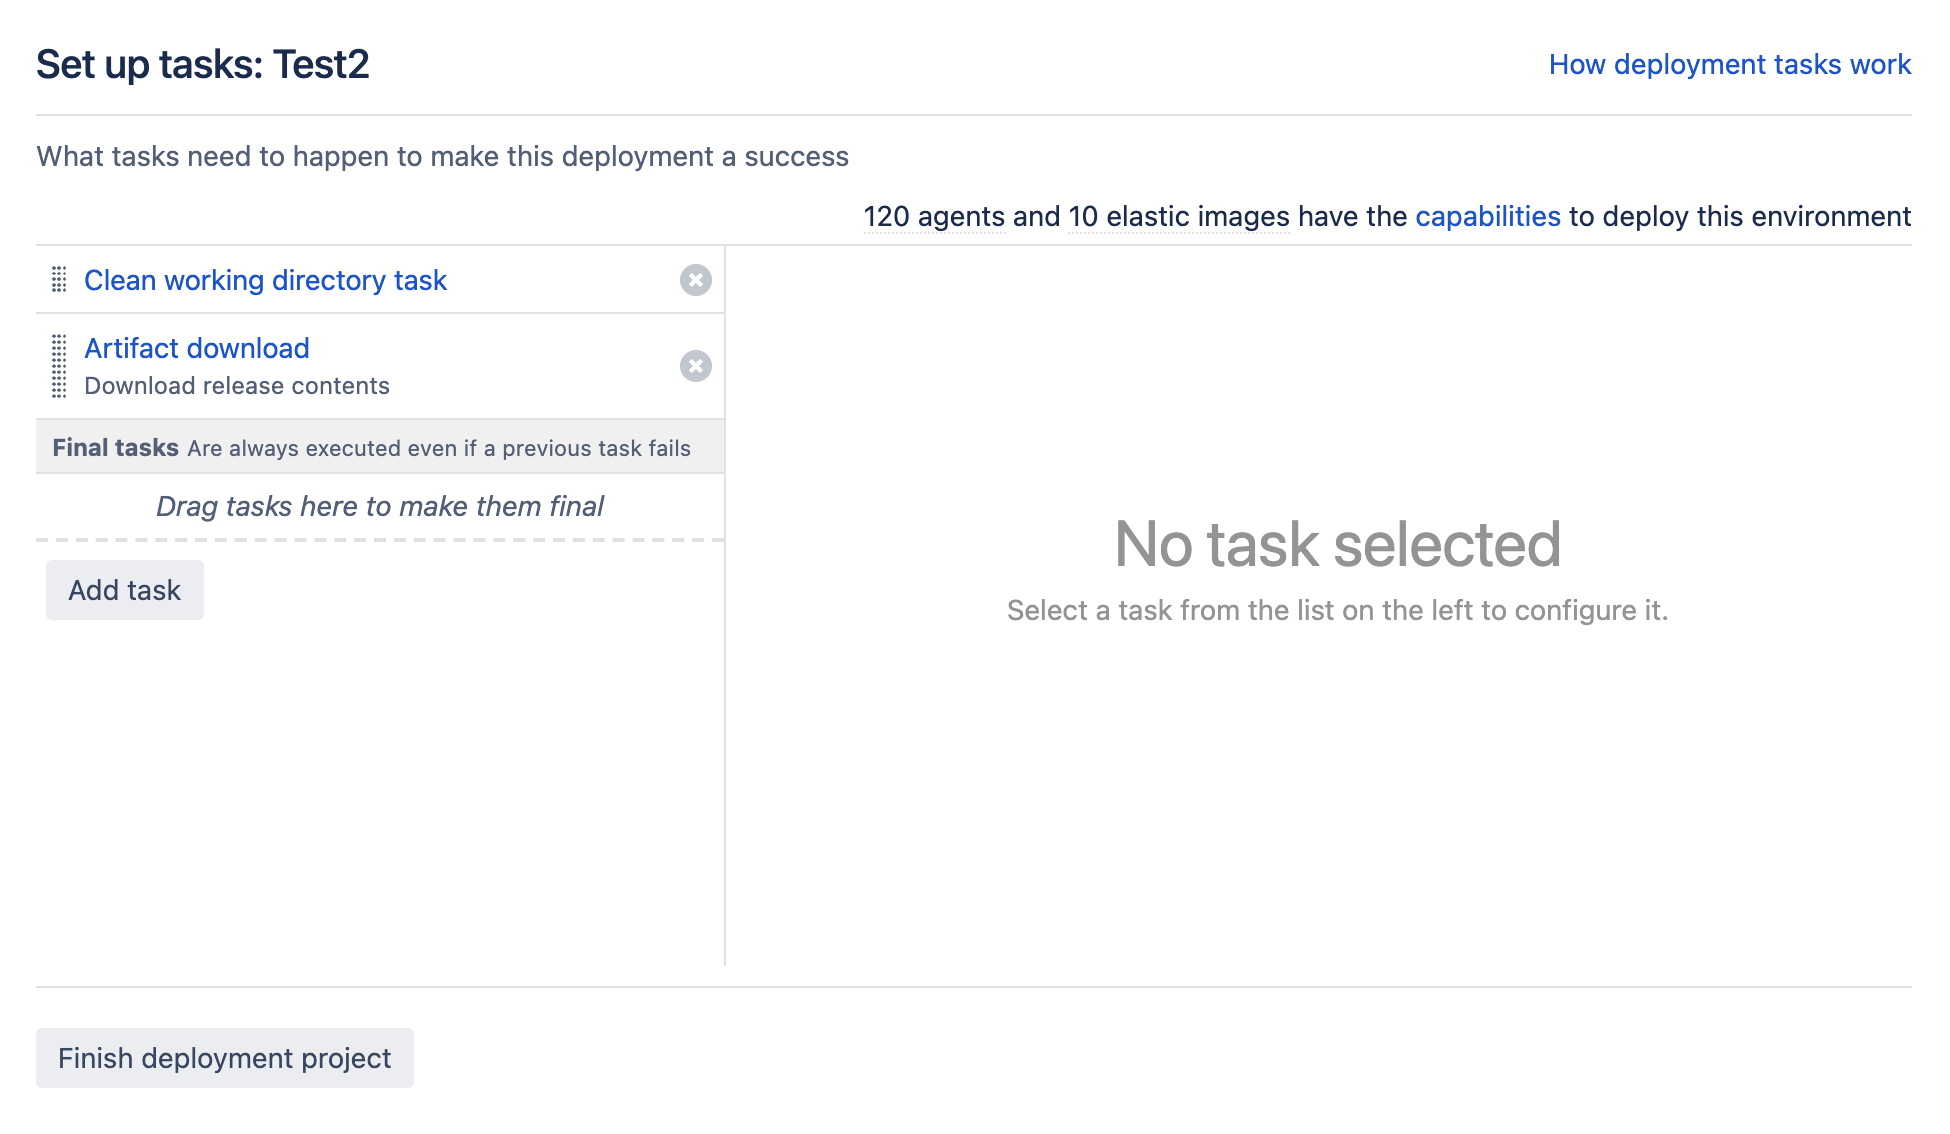 Task setup screen in deployment project environment